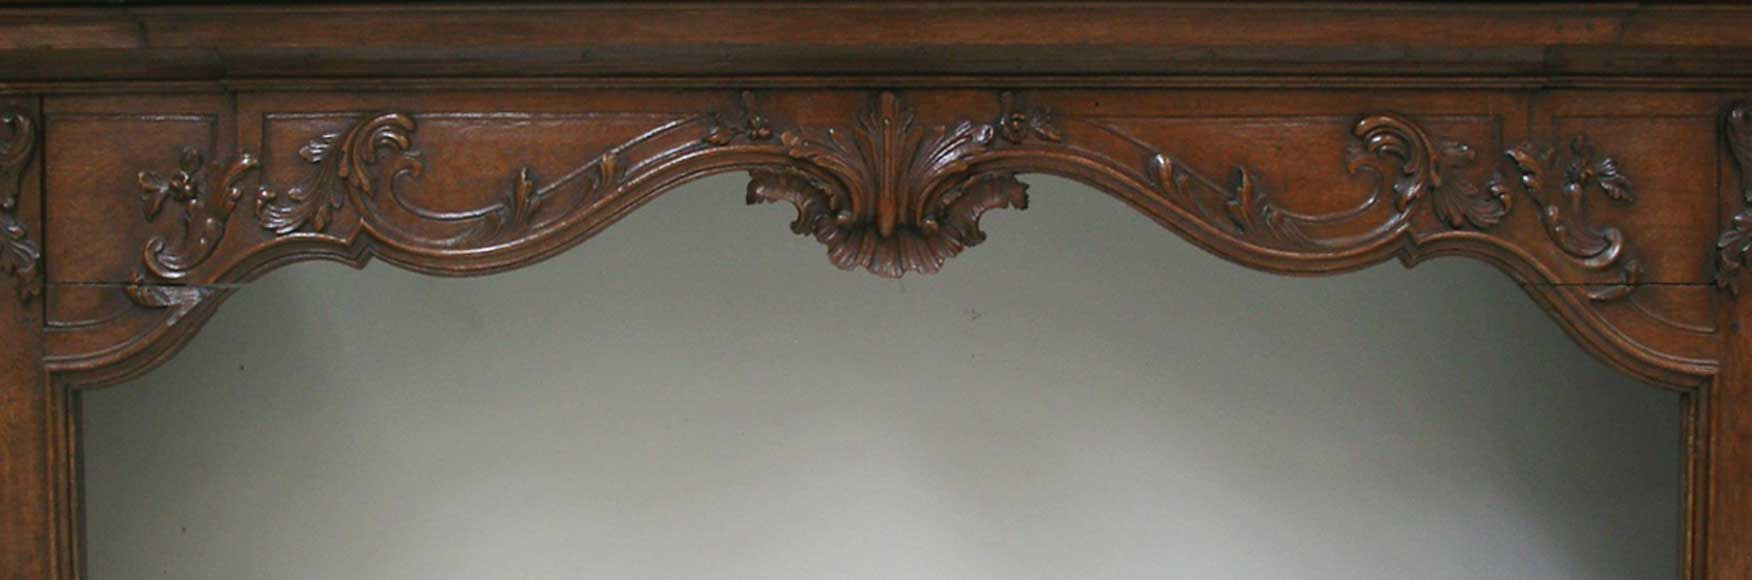 Oak mantle and trumeau with portrait of lady-1